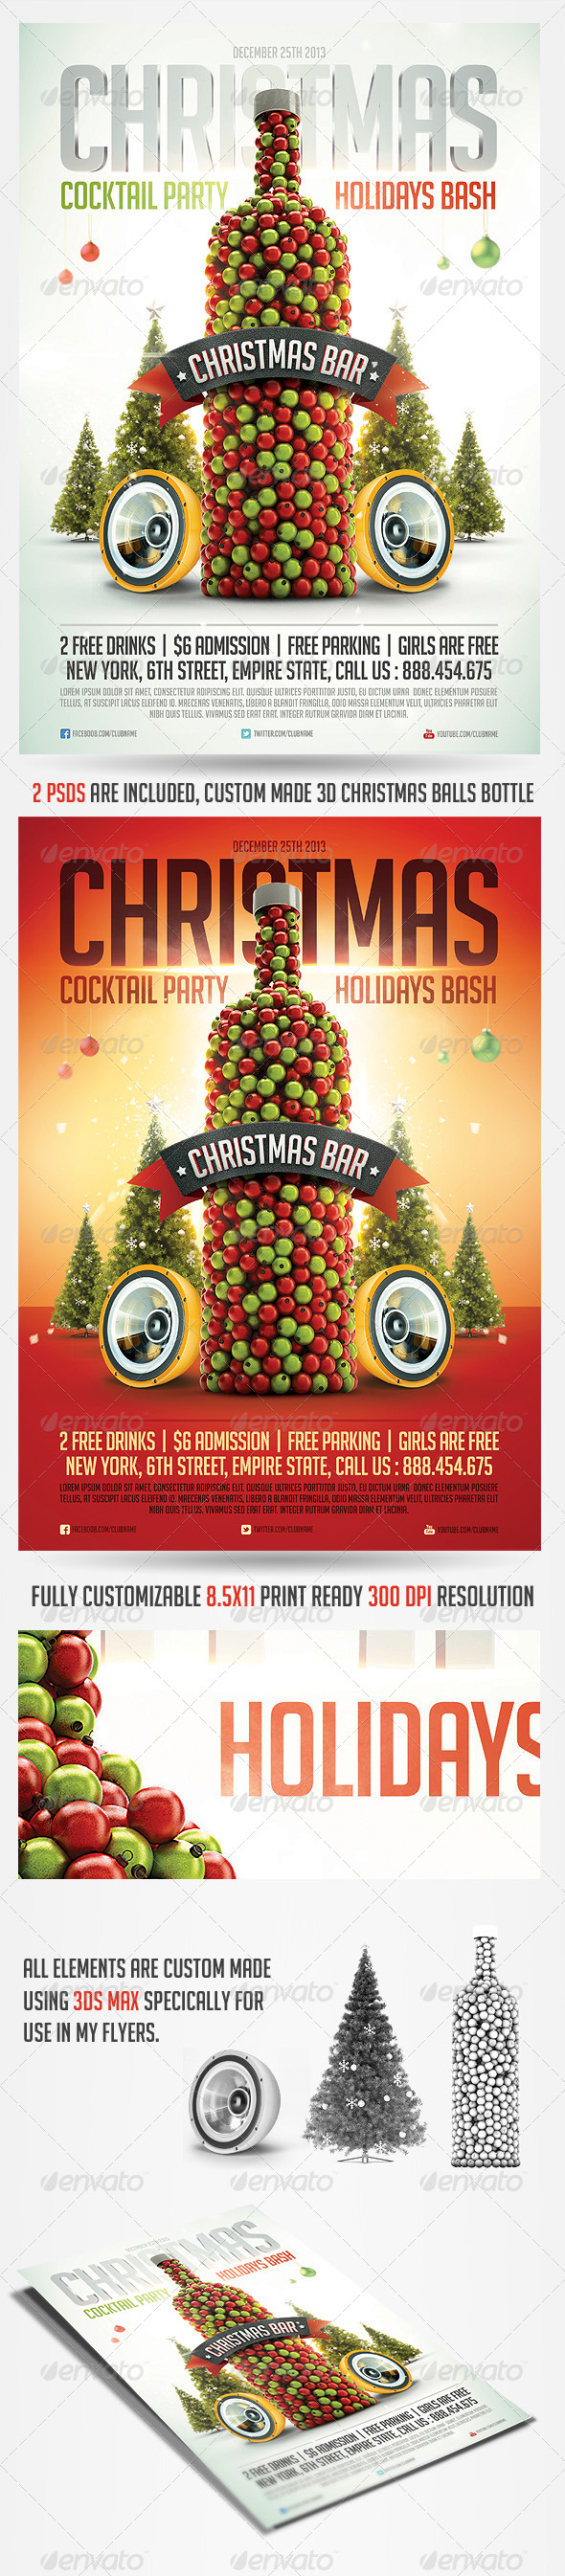 GraphicRiver Christmas Cocktail Flyer Template 6035352